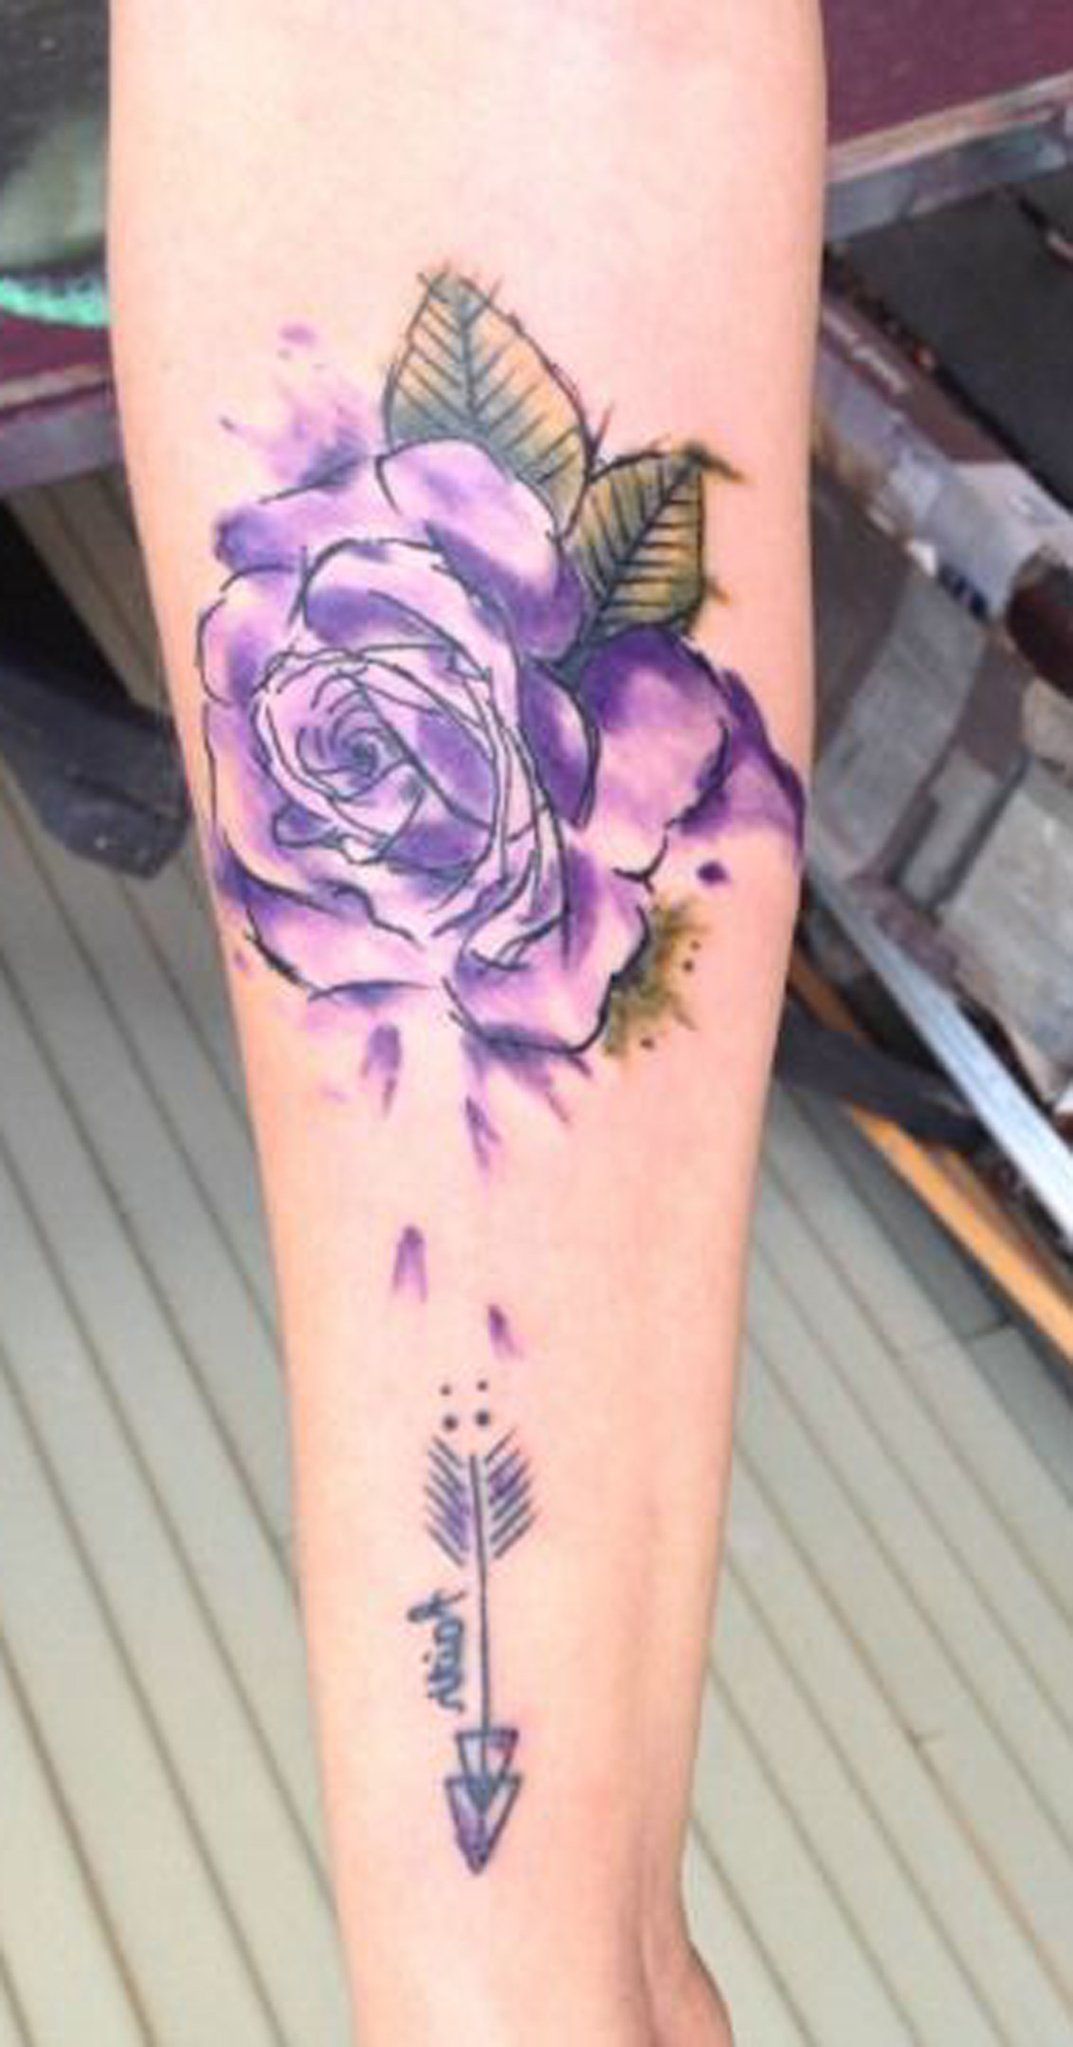 Watercolor Rose Forearm Tattoo Ideas For Women Small Unique